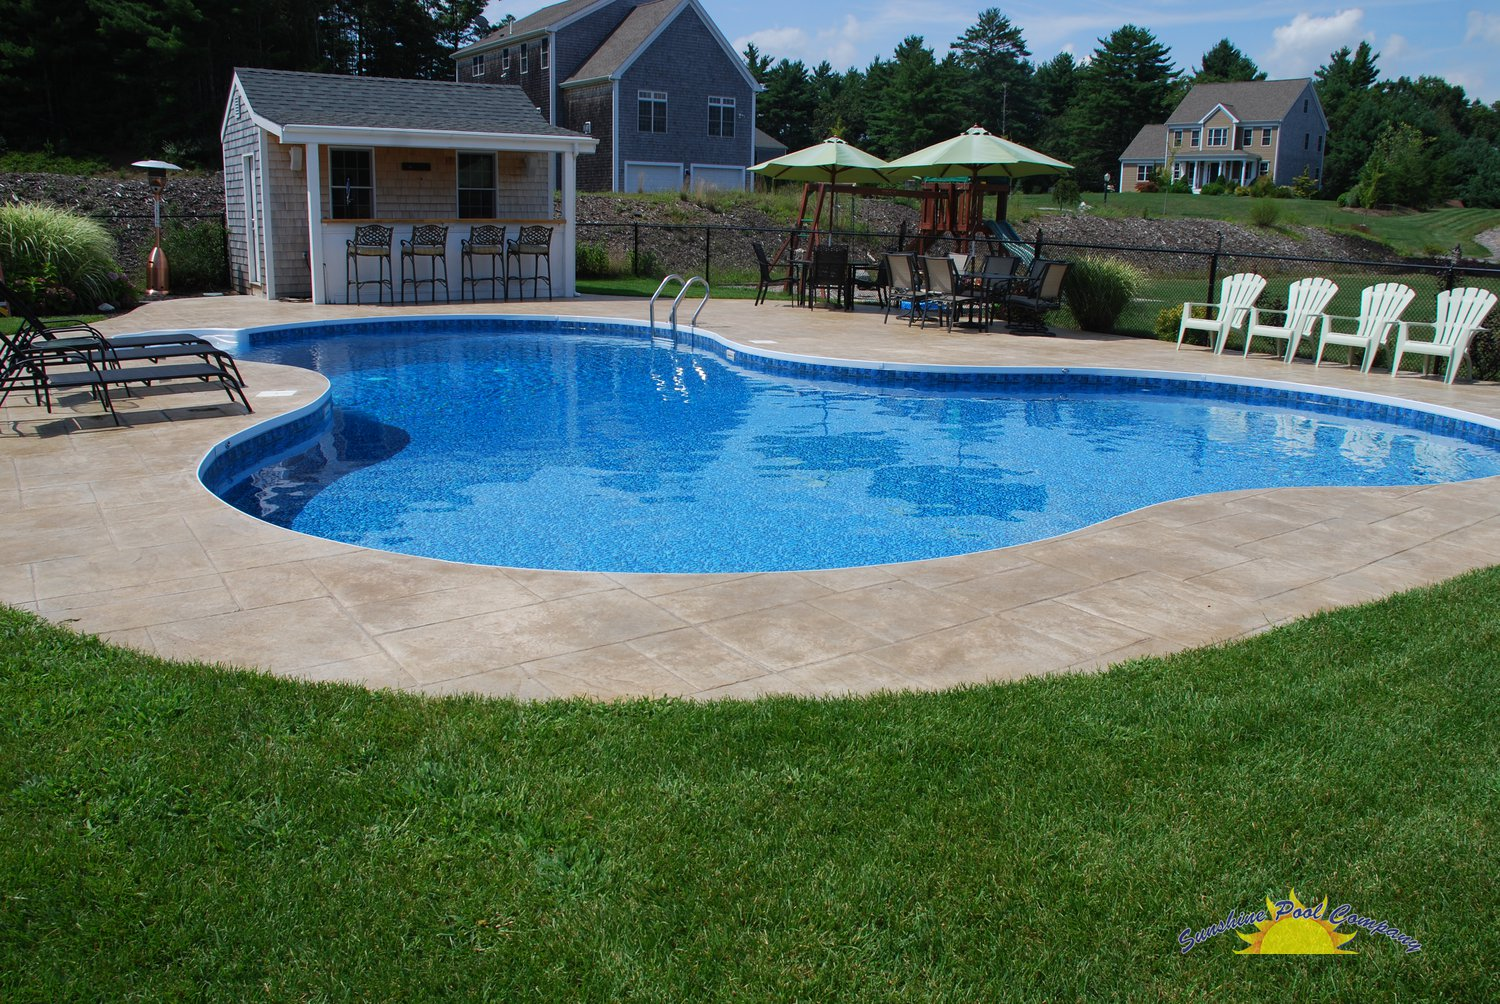 27 simple pictures of inground pools inspiration images for Inground swimming pool plans